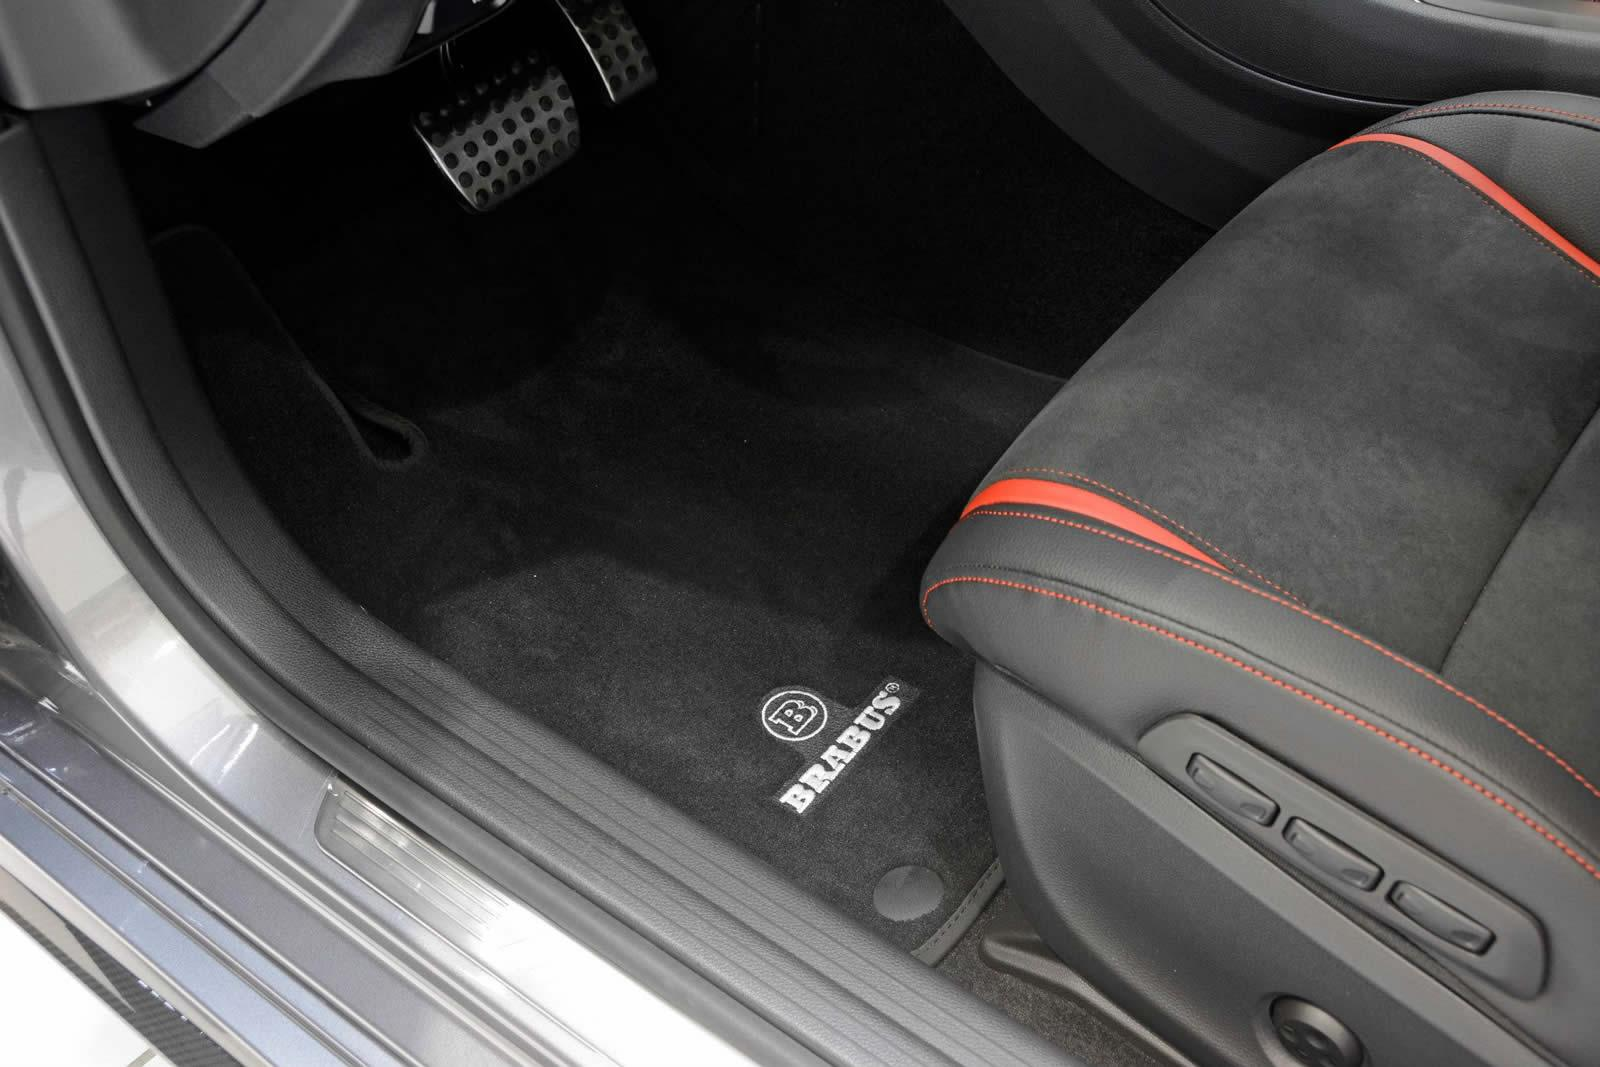 Mercedes tuning brabus tuned cla45 amg with nearly 300kw for Mercedes benz glc 300 floor mats